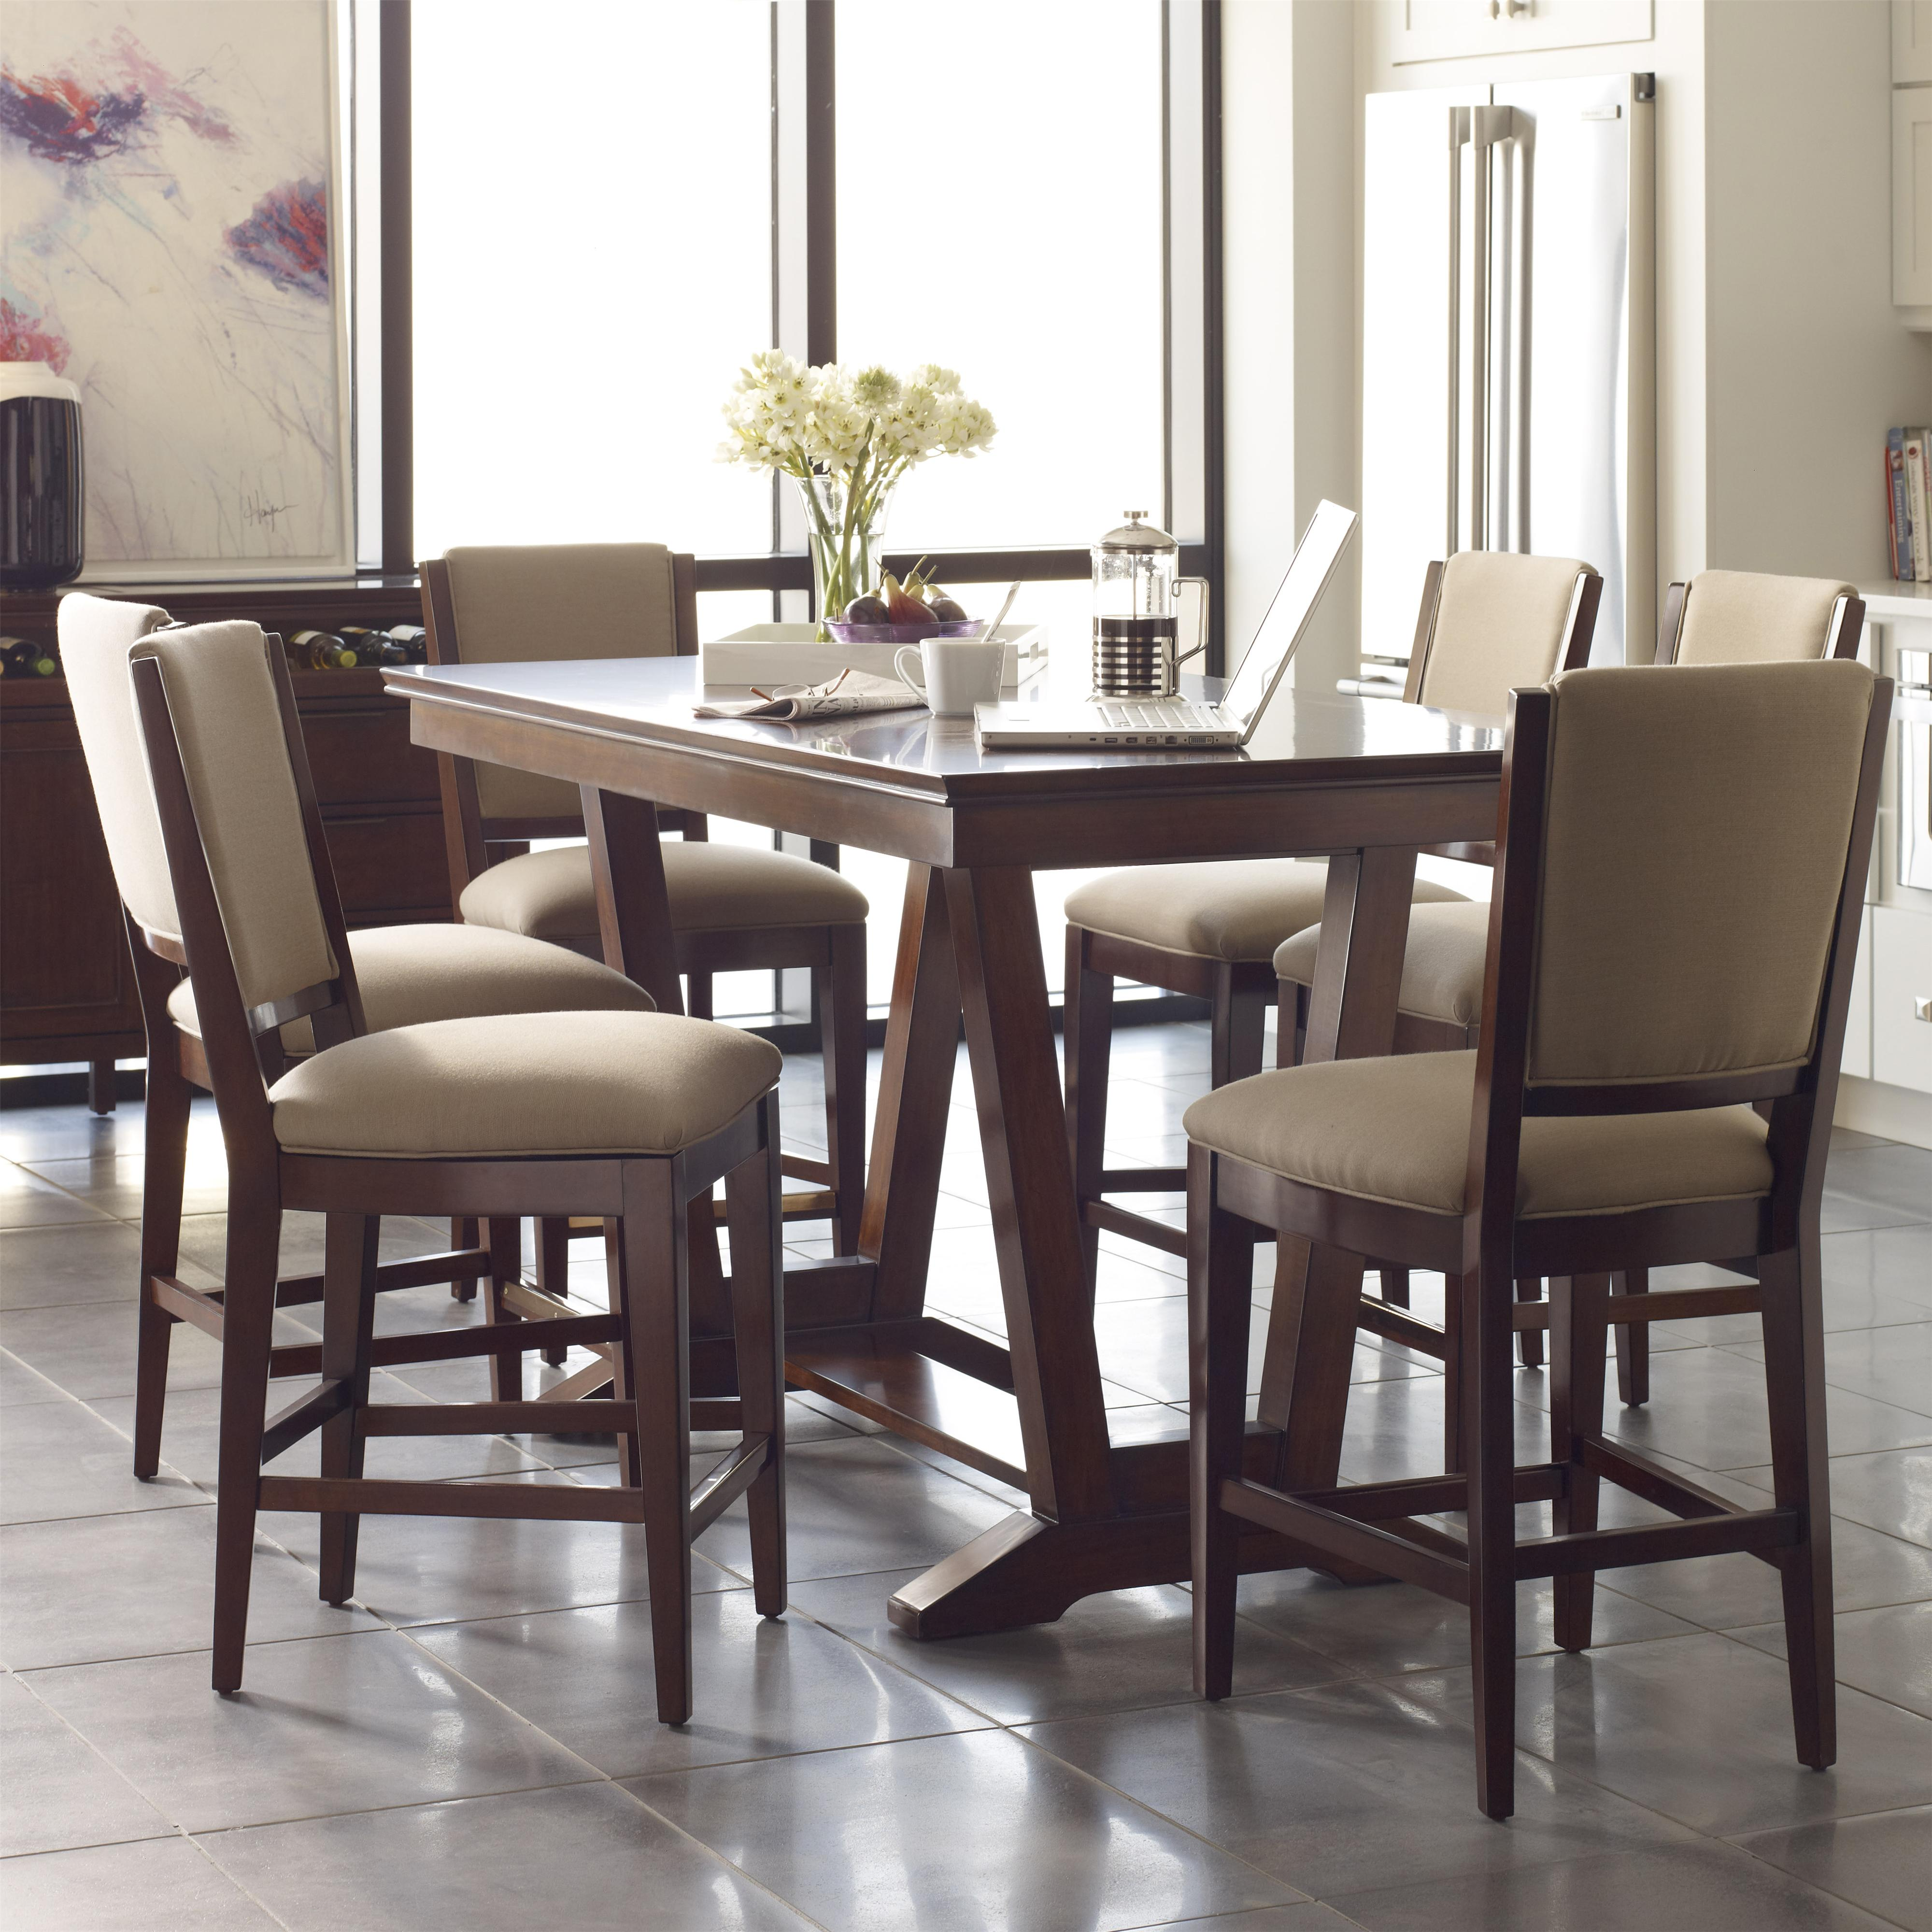 Elise 7 Pc Counter Height Dining Set by Kincaid Furniture at Northeast Factory Direct